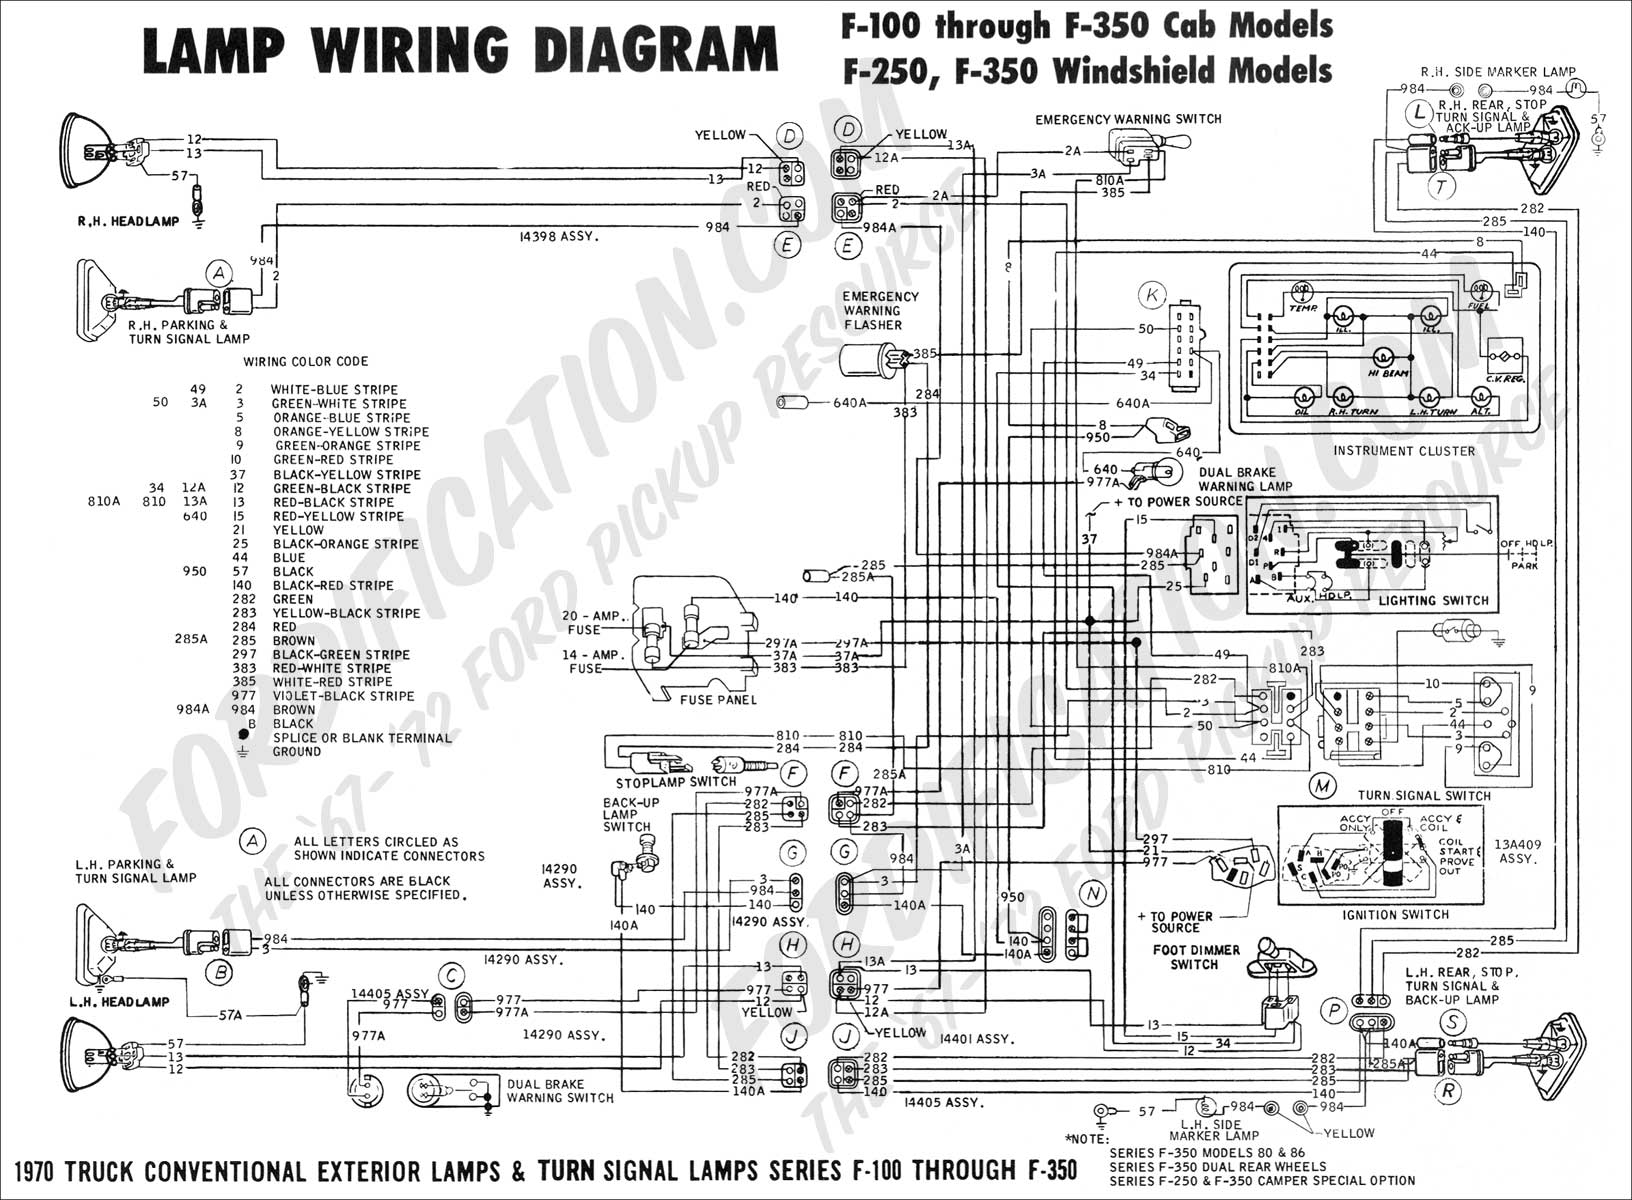 1970 ford wiring ford truck technical drawings and schematics - section h ... 1970 ford torino fuse box